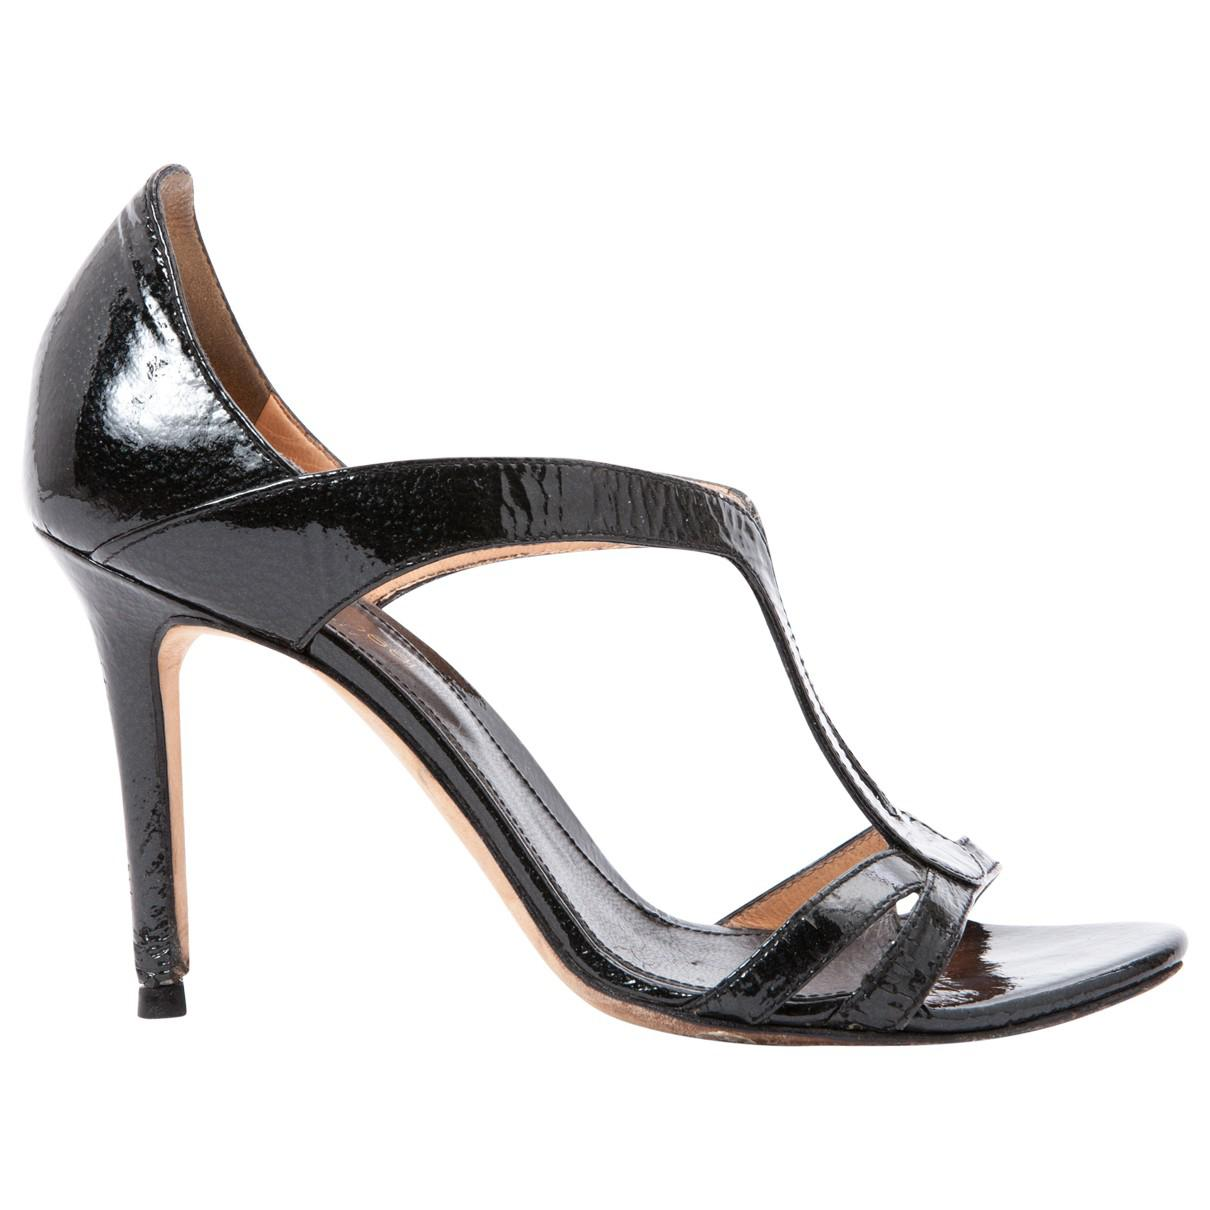 Pre-owned - Patent leather sandals Sergio Rossi ICE7RwFh5